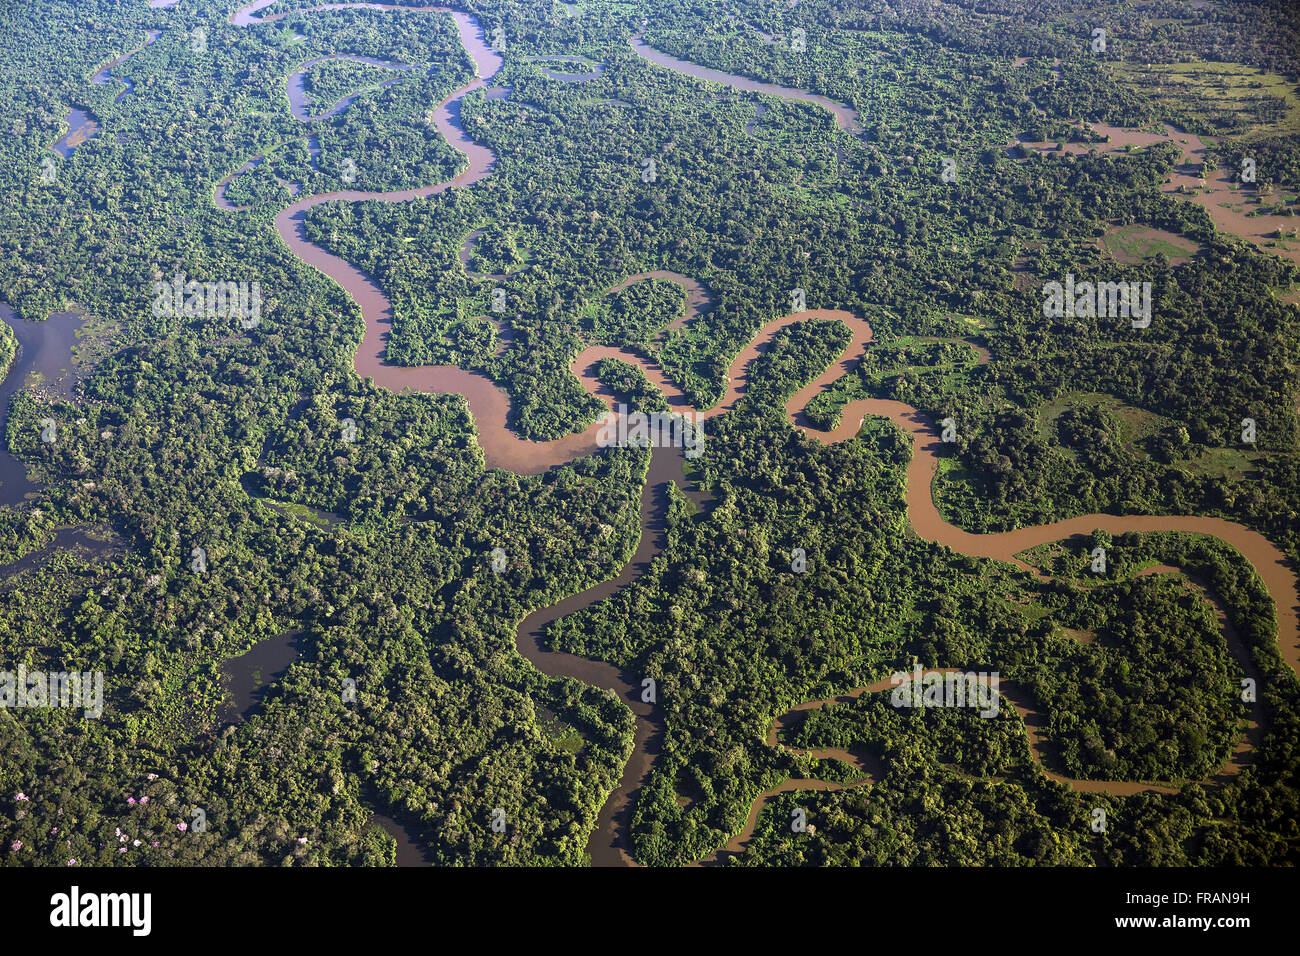 Aerial view of the meeting between the Rio Paraguay and Rio Sepotuba - Stock Image